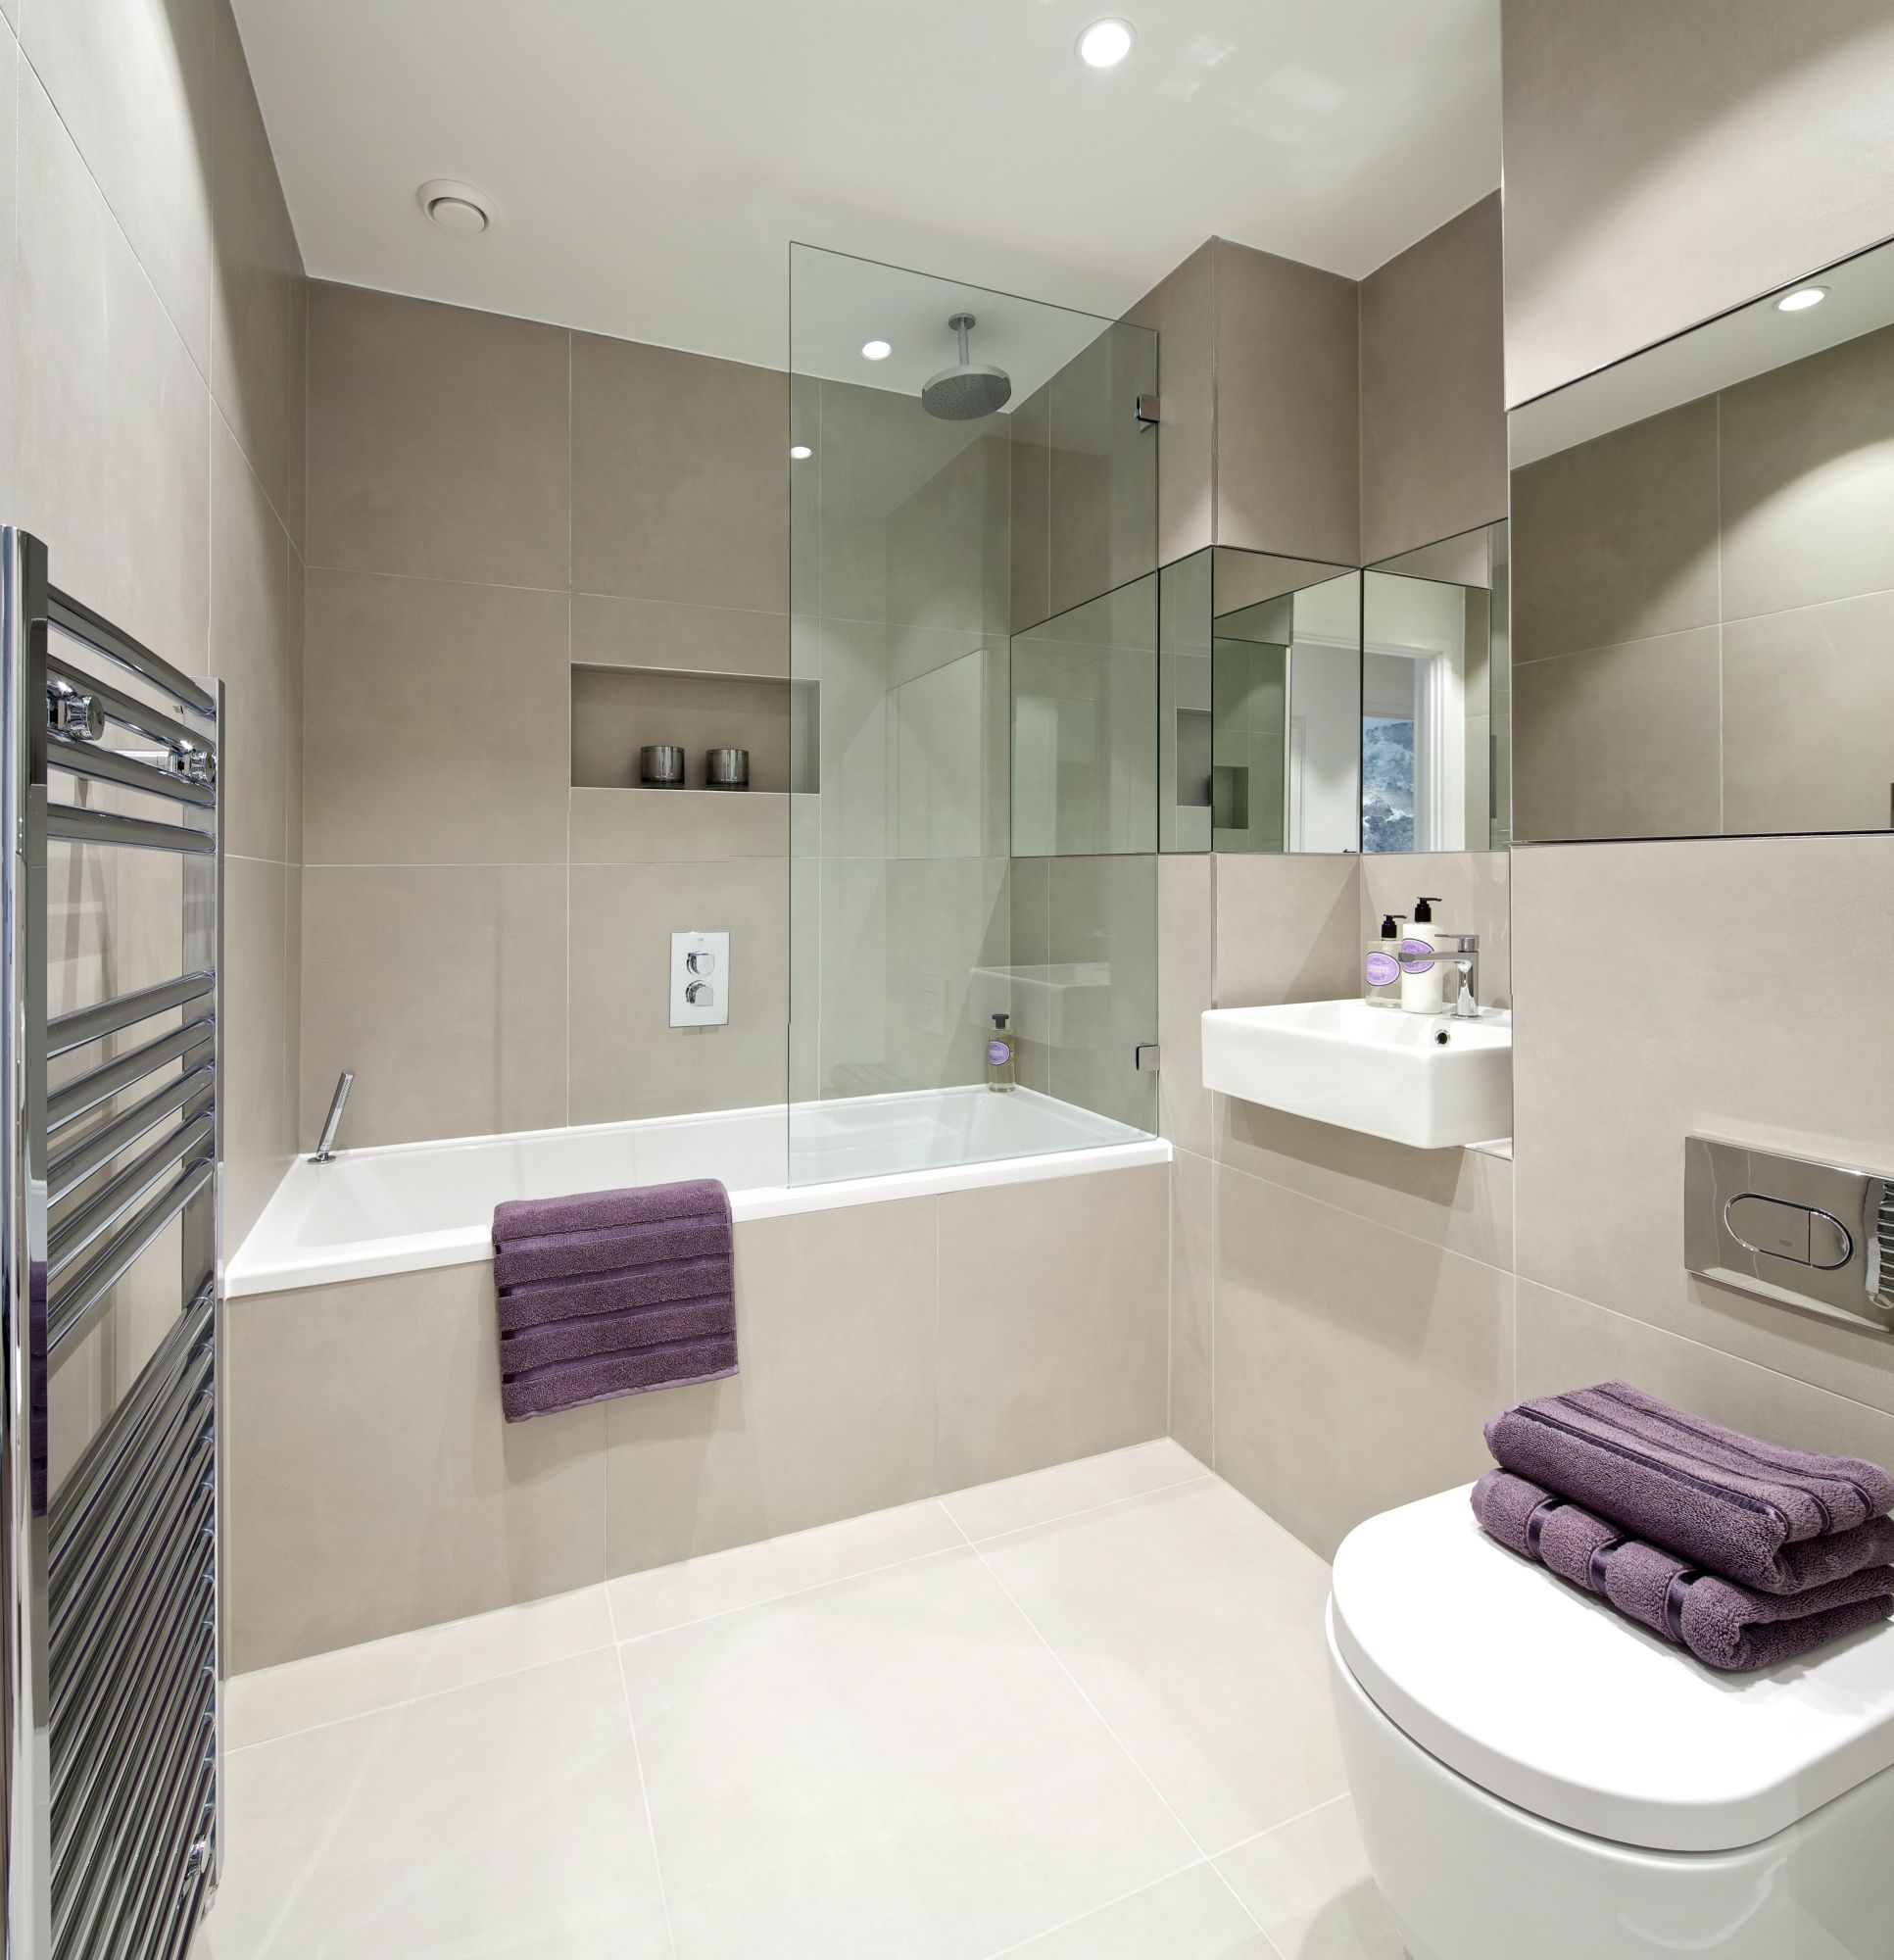 Stunning home interiors bathroom another stunning show for Small bathroom ideas 20 of the best